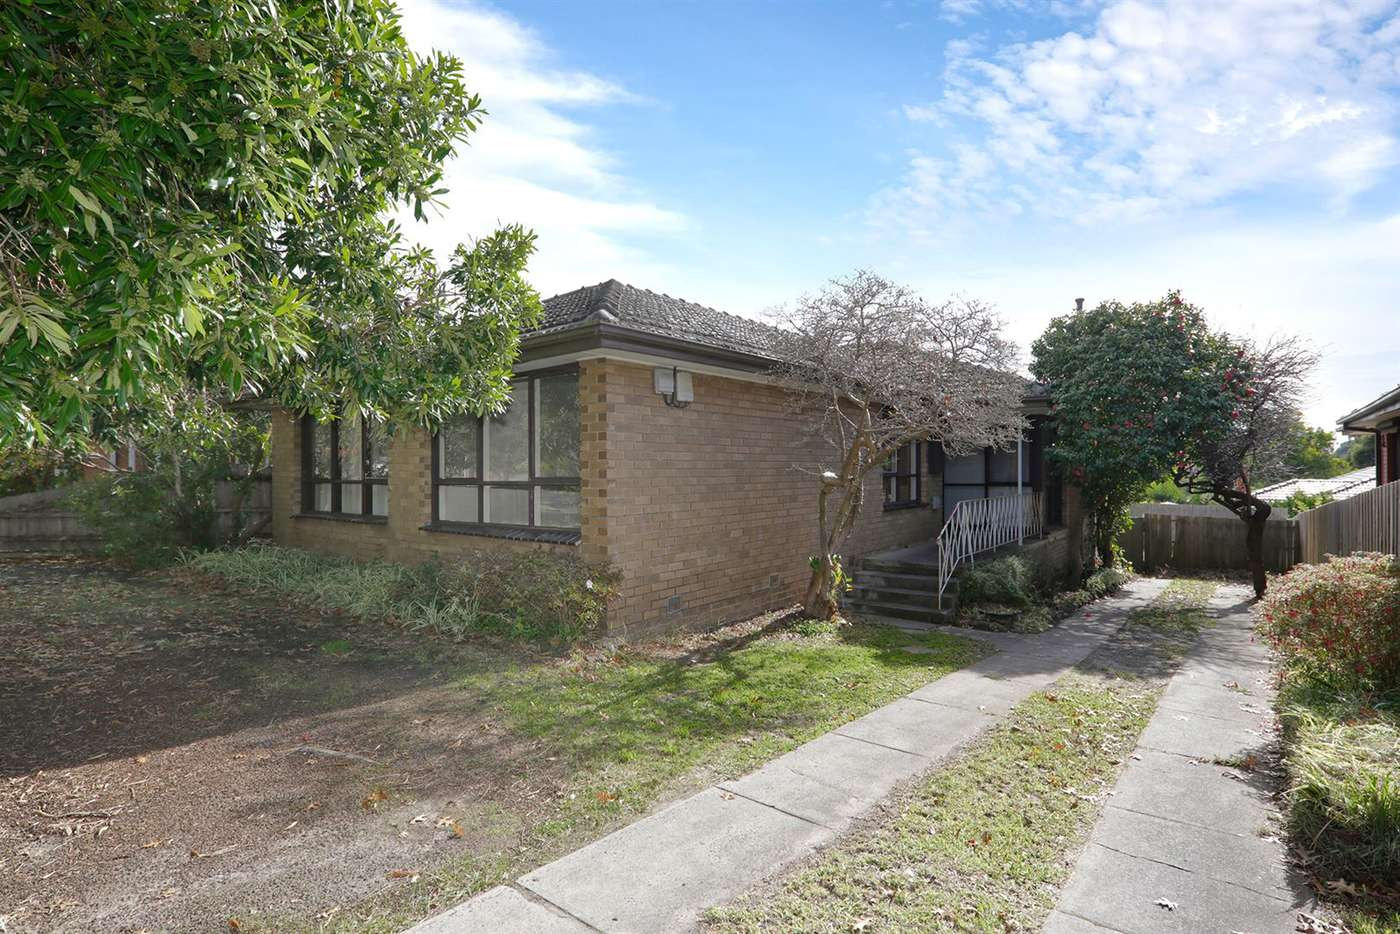 Main view of Homely house listing, 31 Lorraine Drive, Burwood East VIC 3151